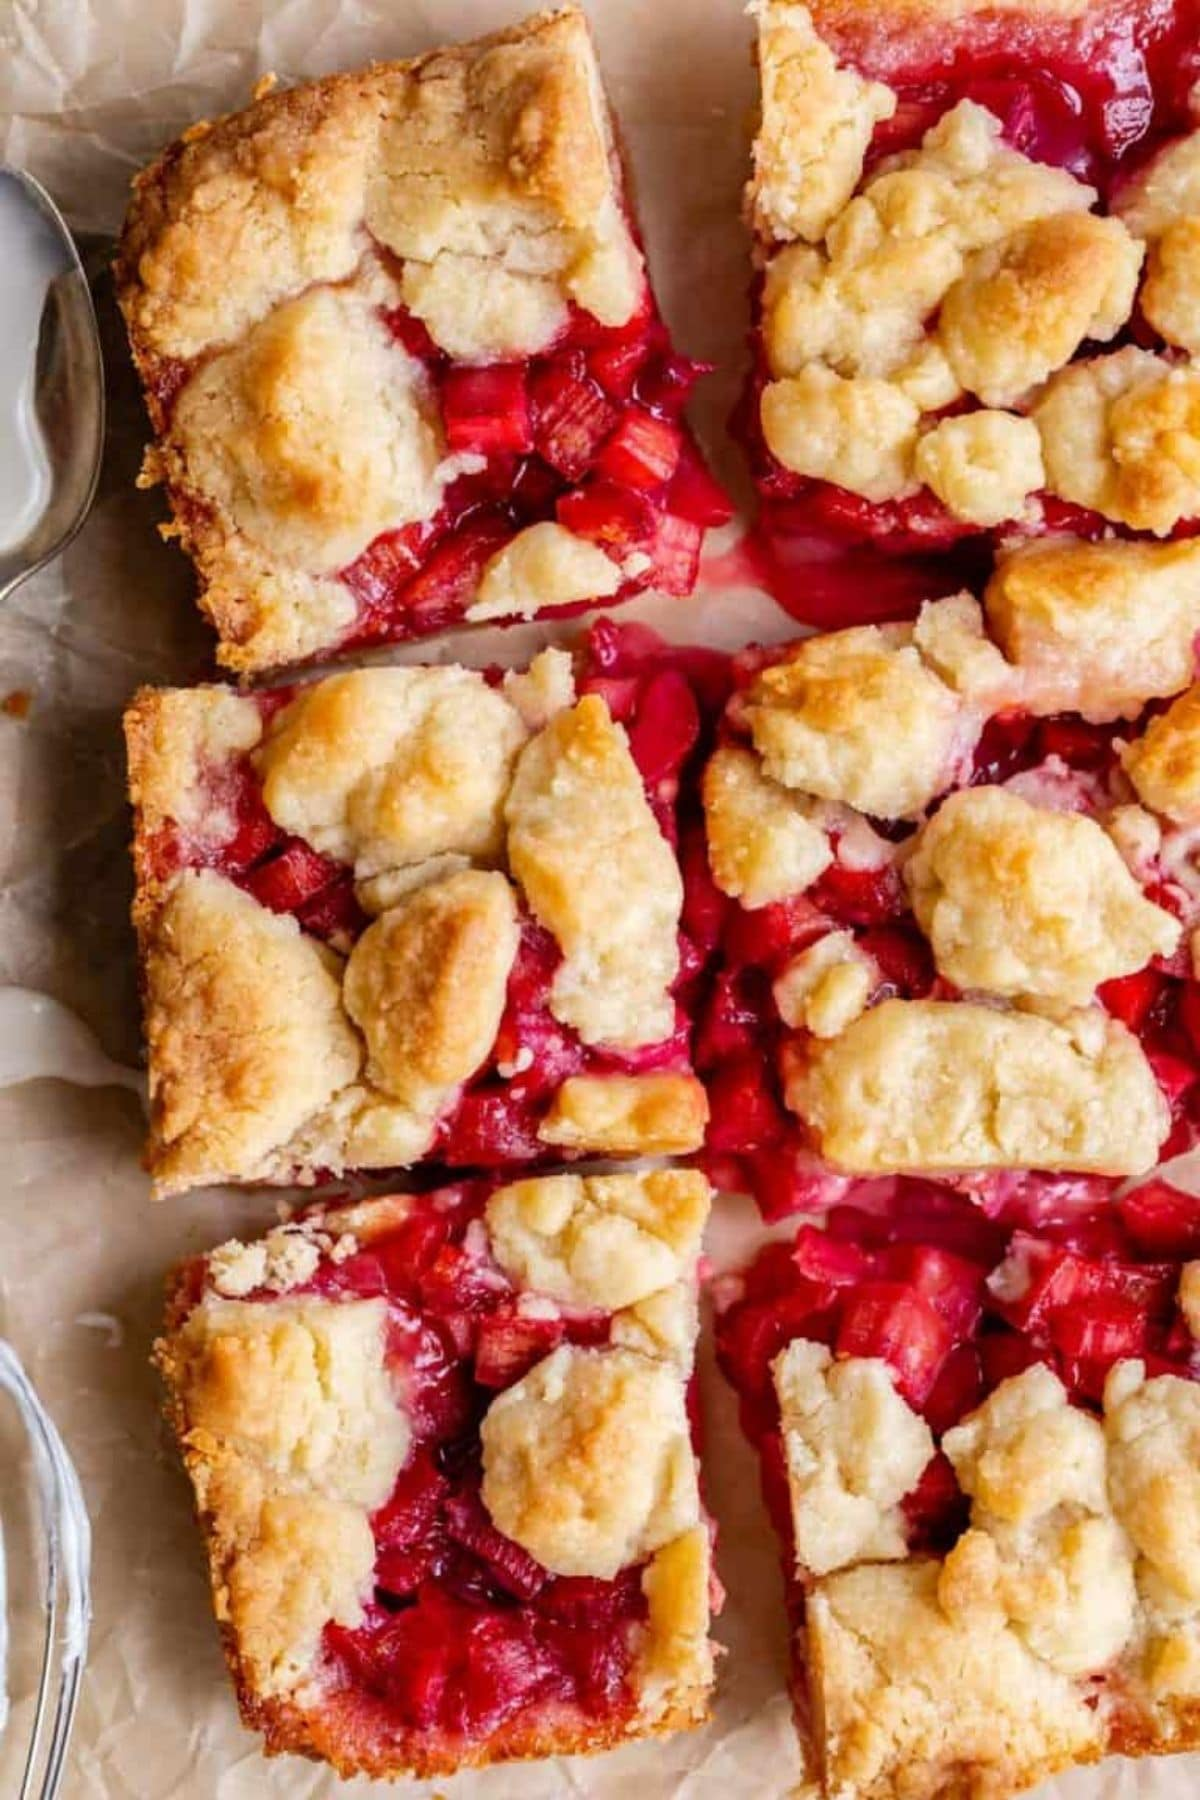 Rhubarb bars with shortbread topping cut on board